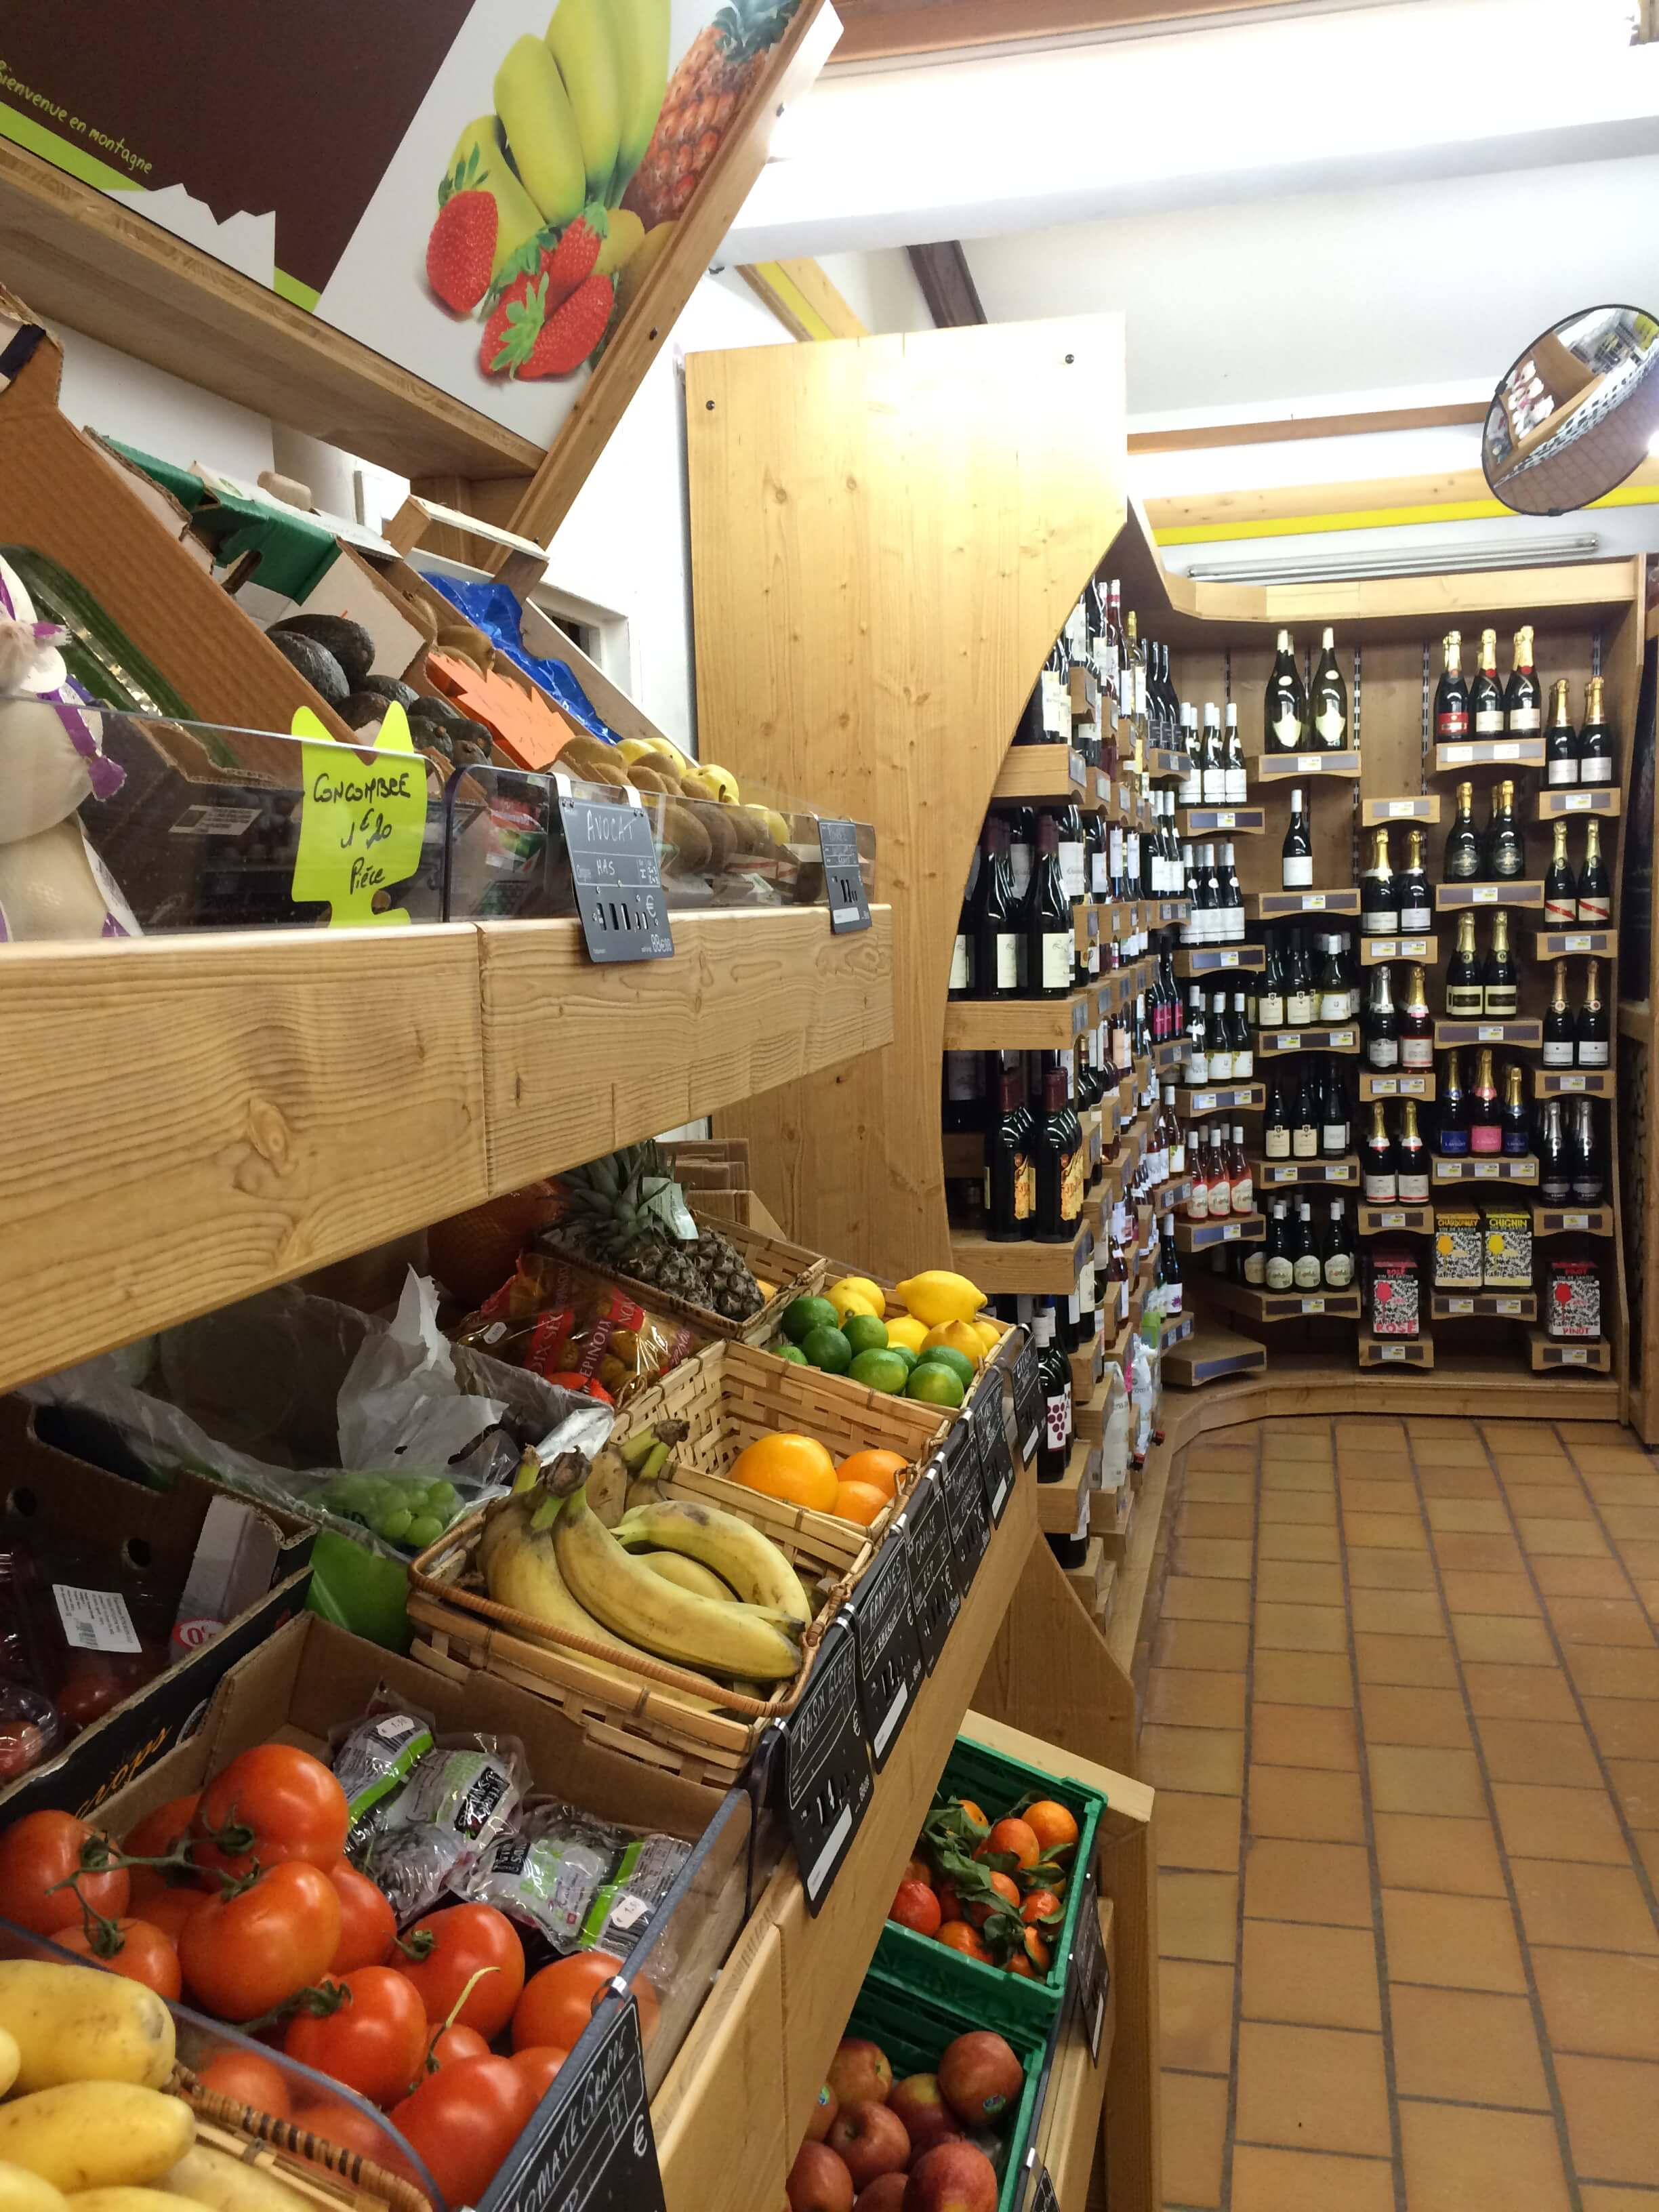 Sherpa supermarket Deux Alpes 1800 (les) fruits and wine cellar